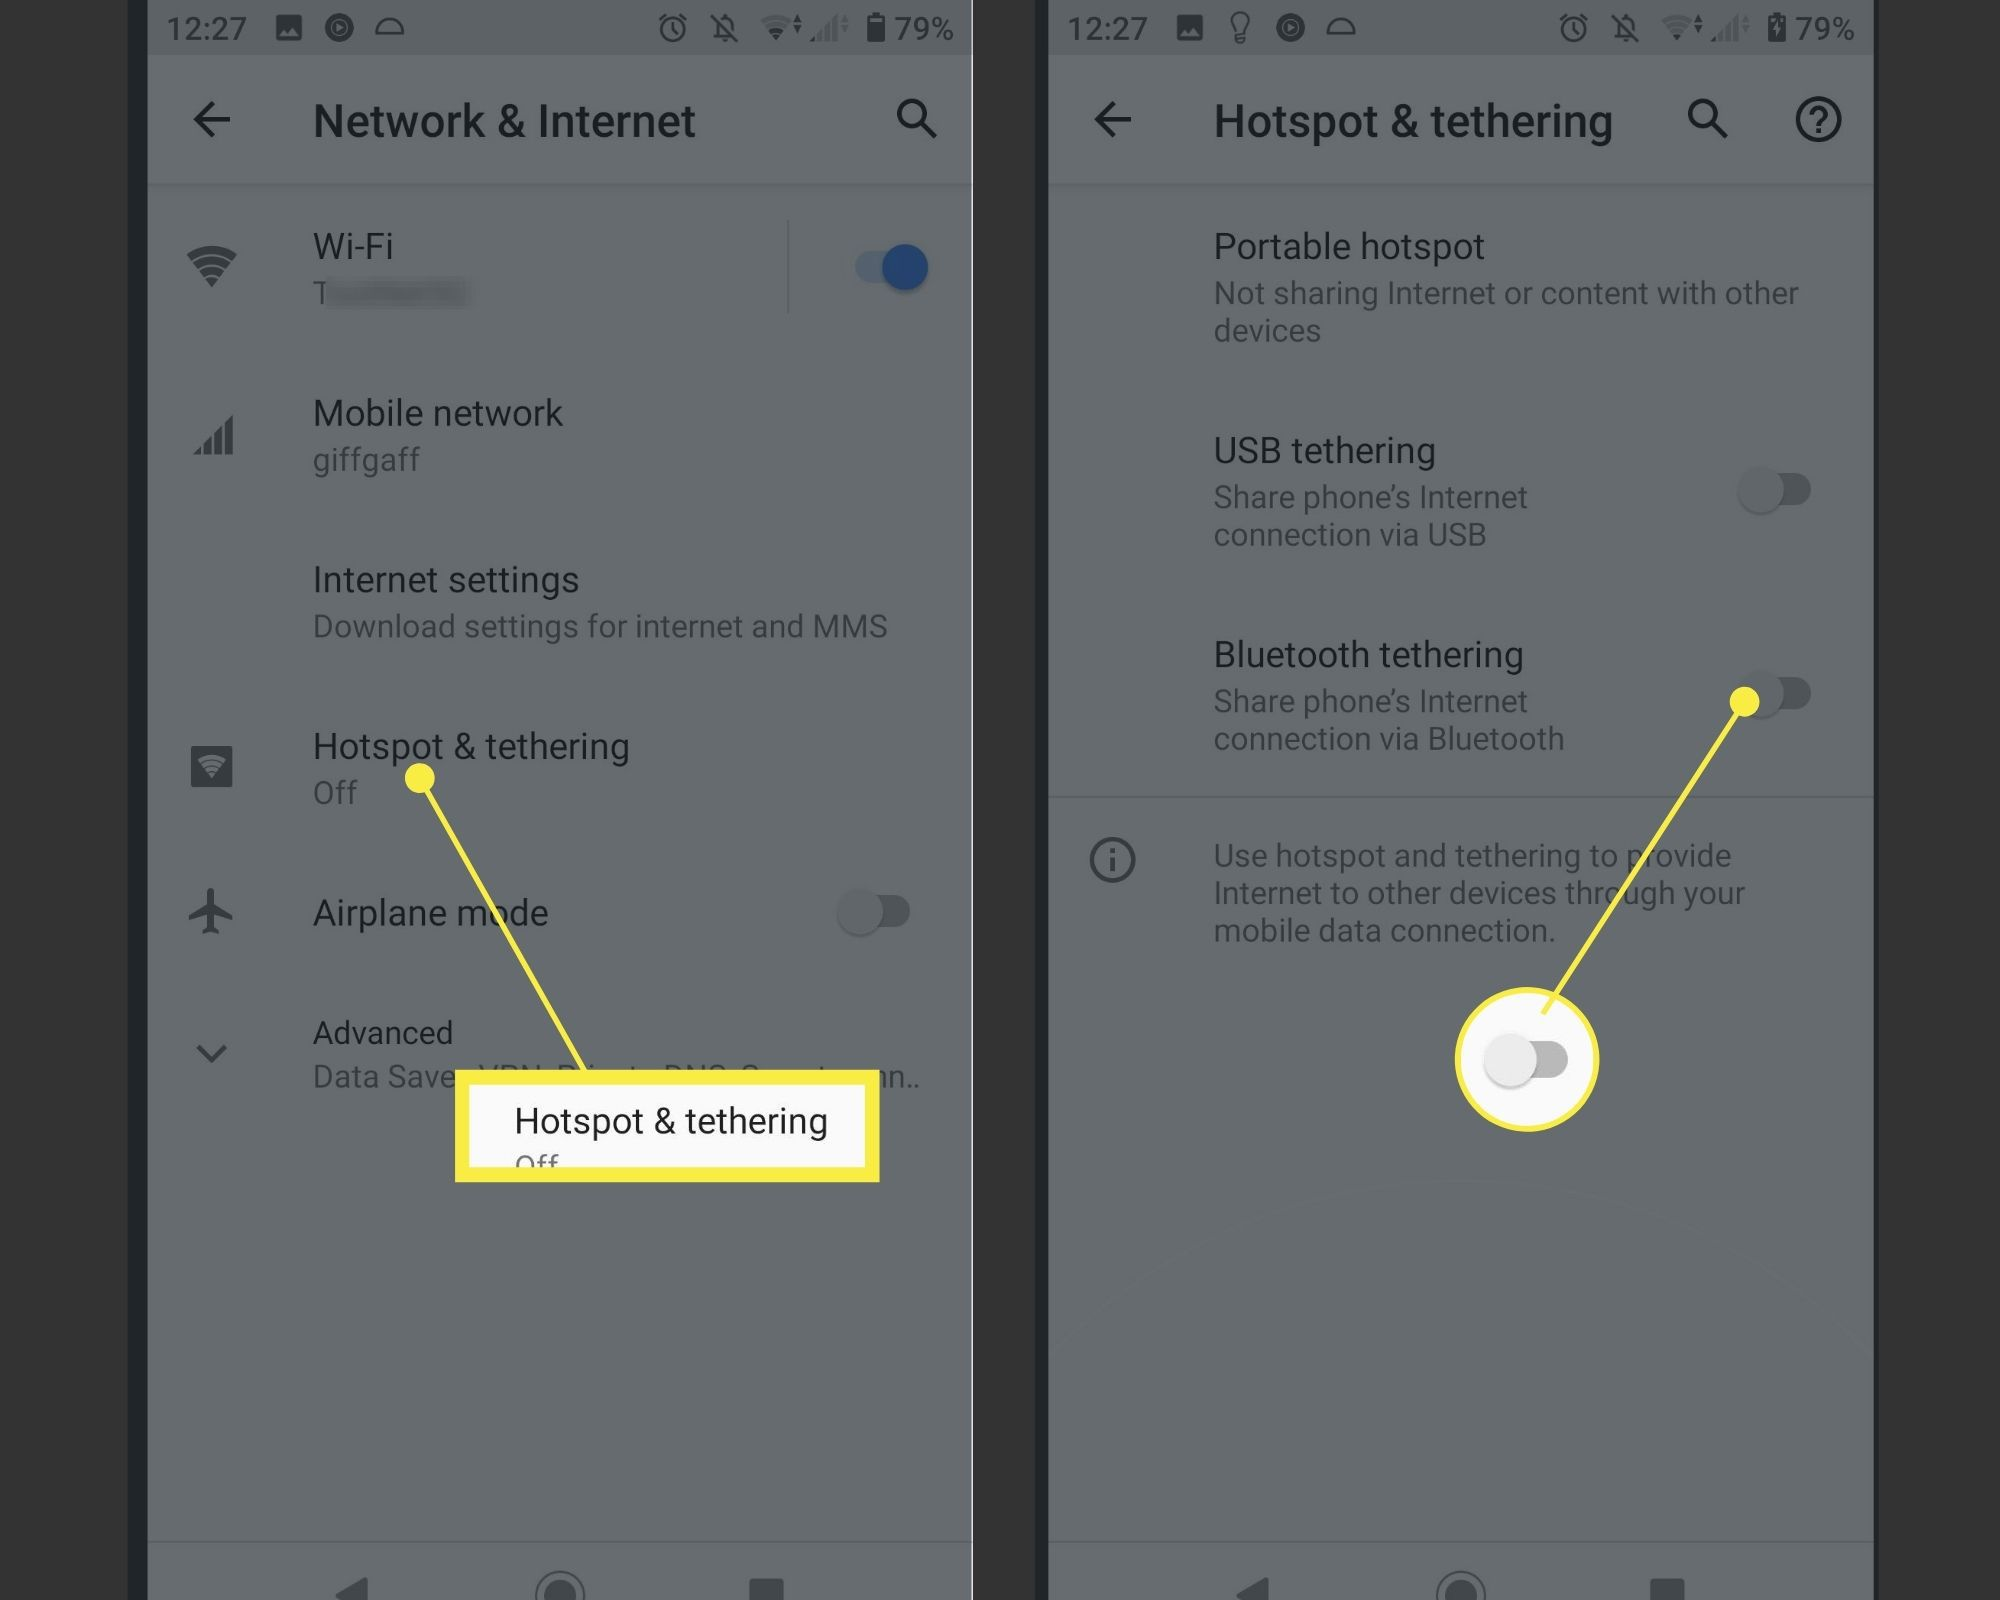 Enabling Hotspot & Tethering on Android.